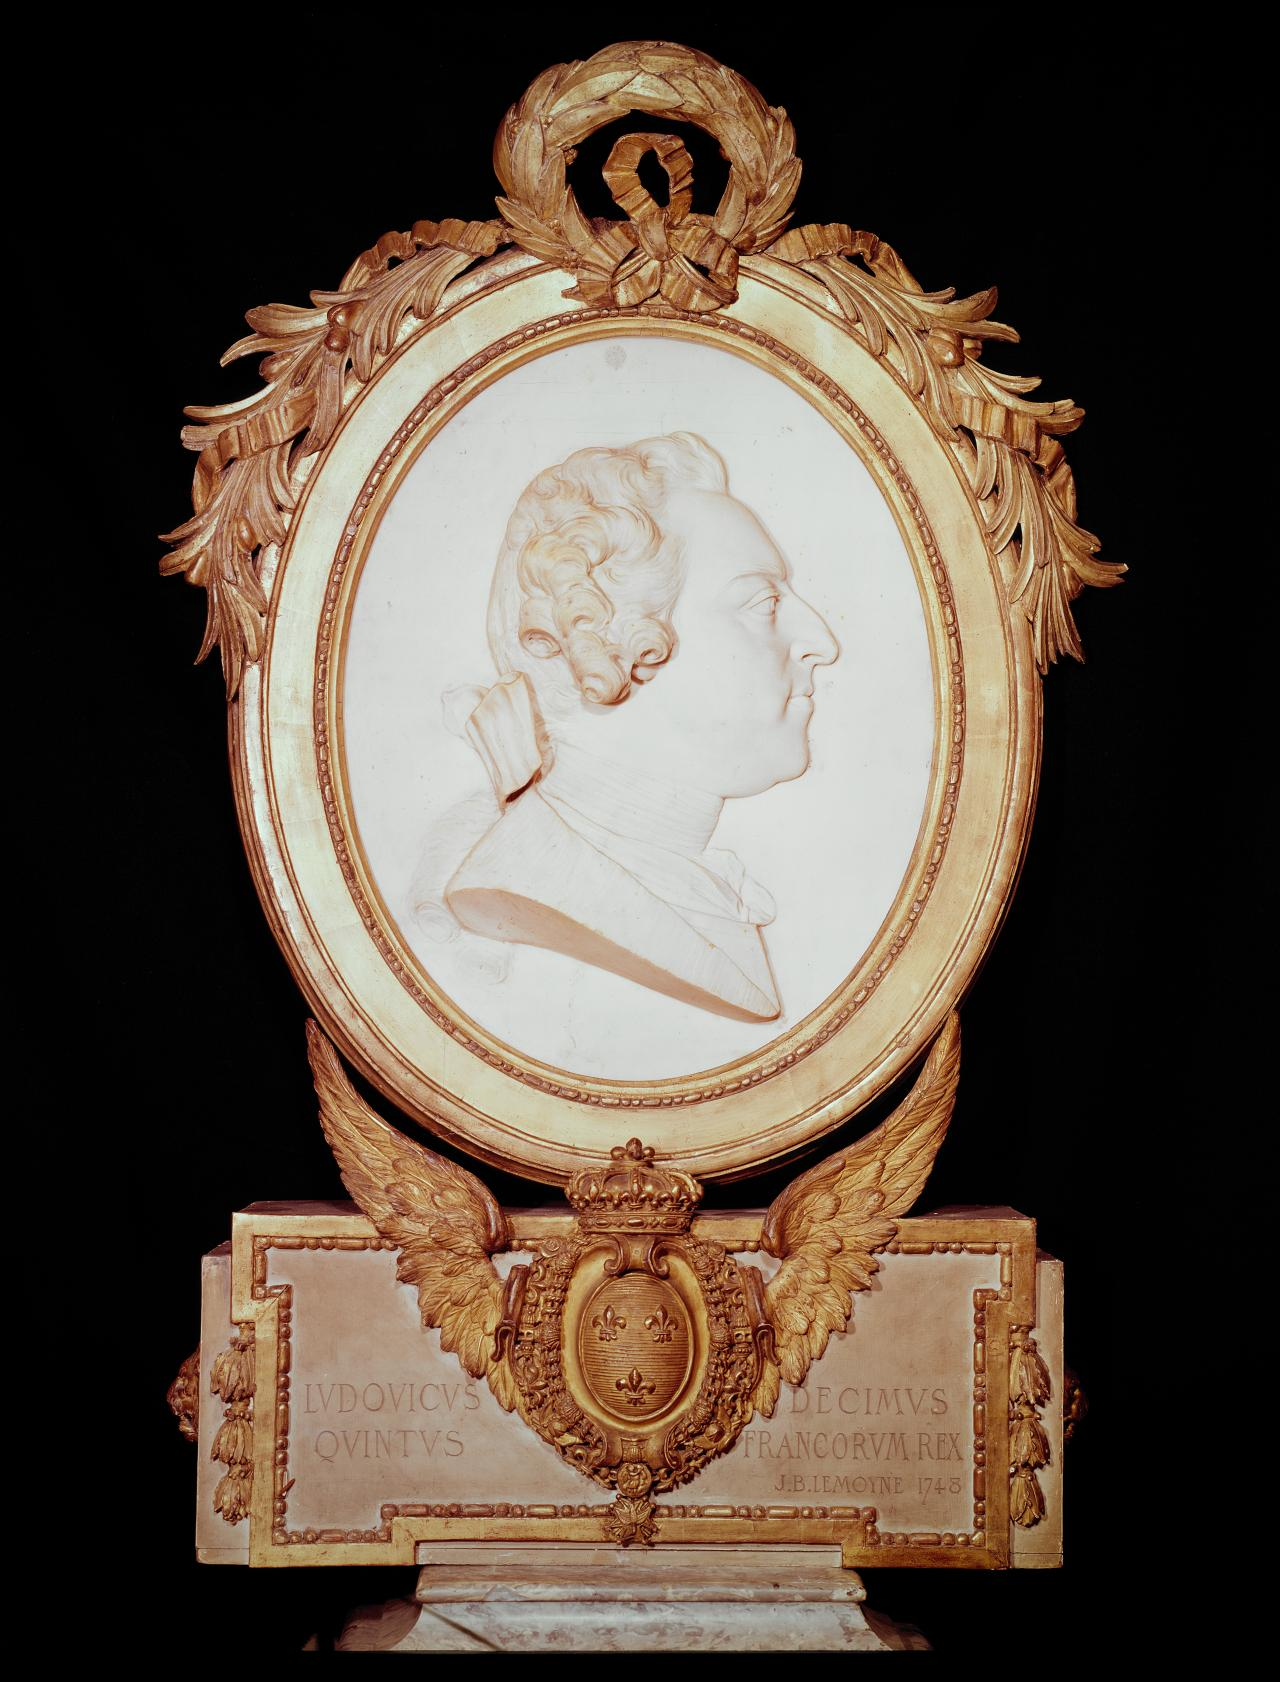 Portrait medallion of Louis XV